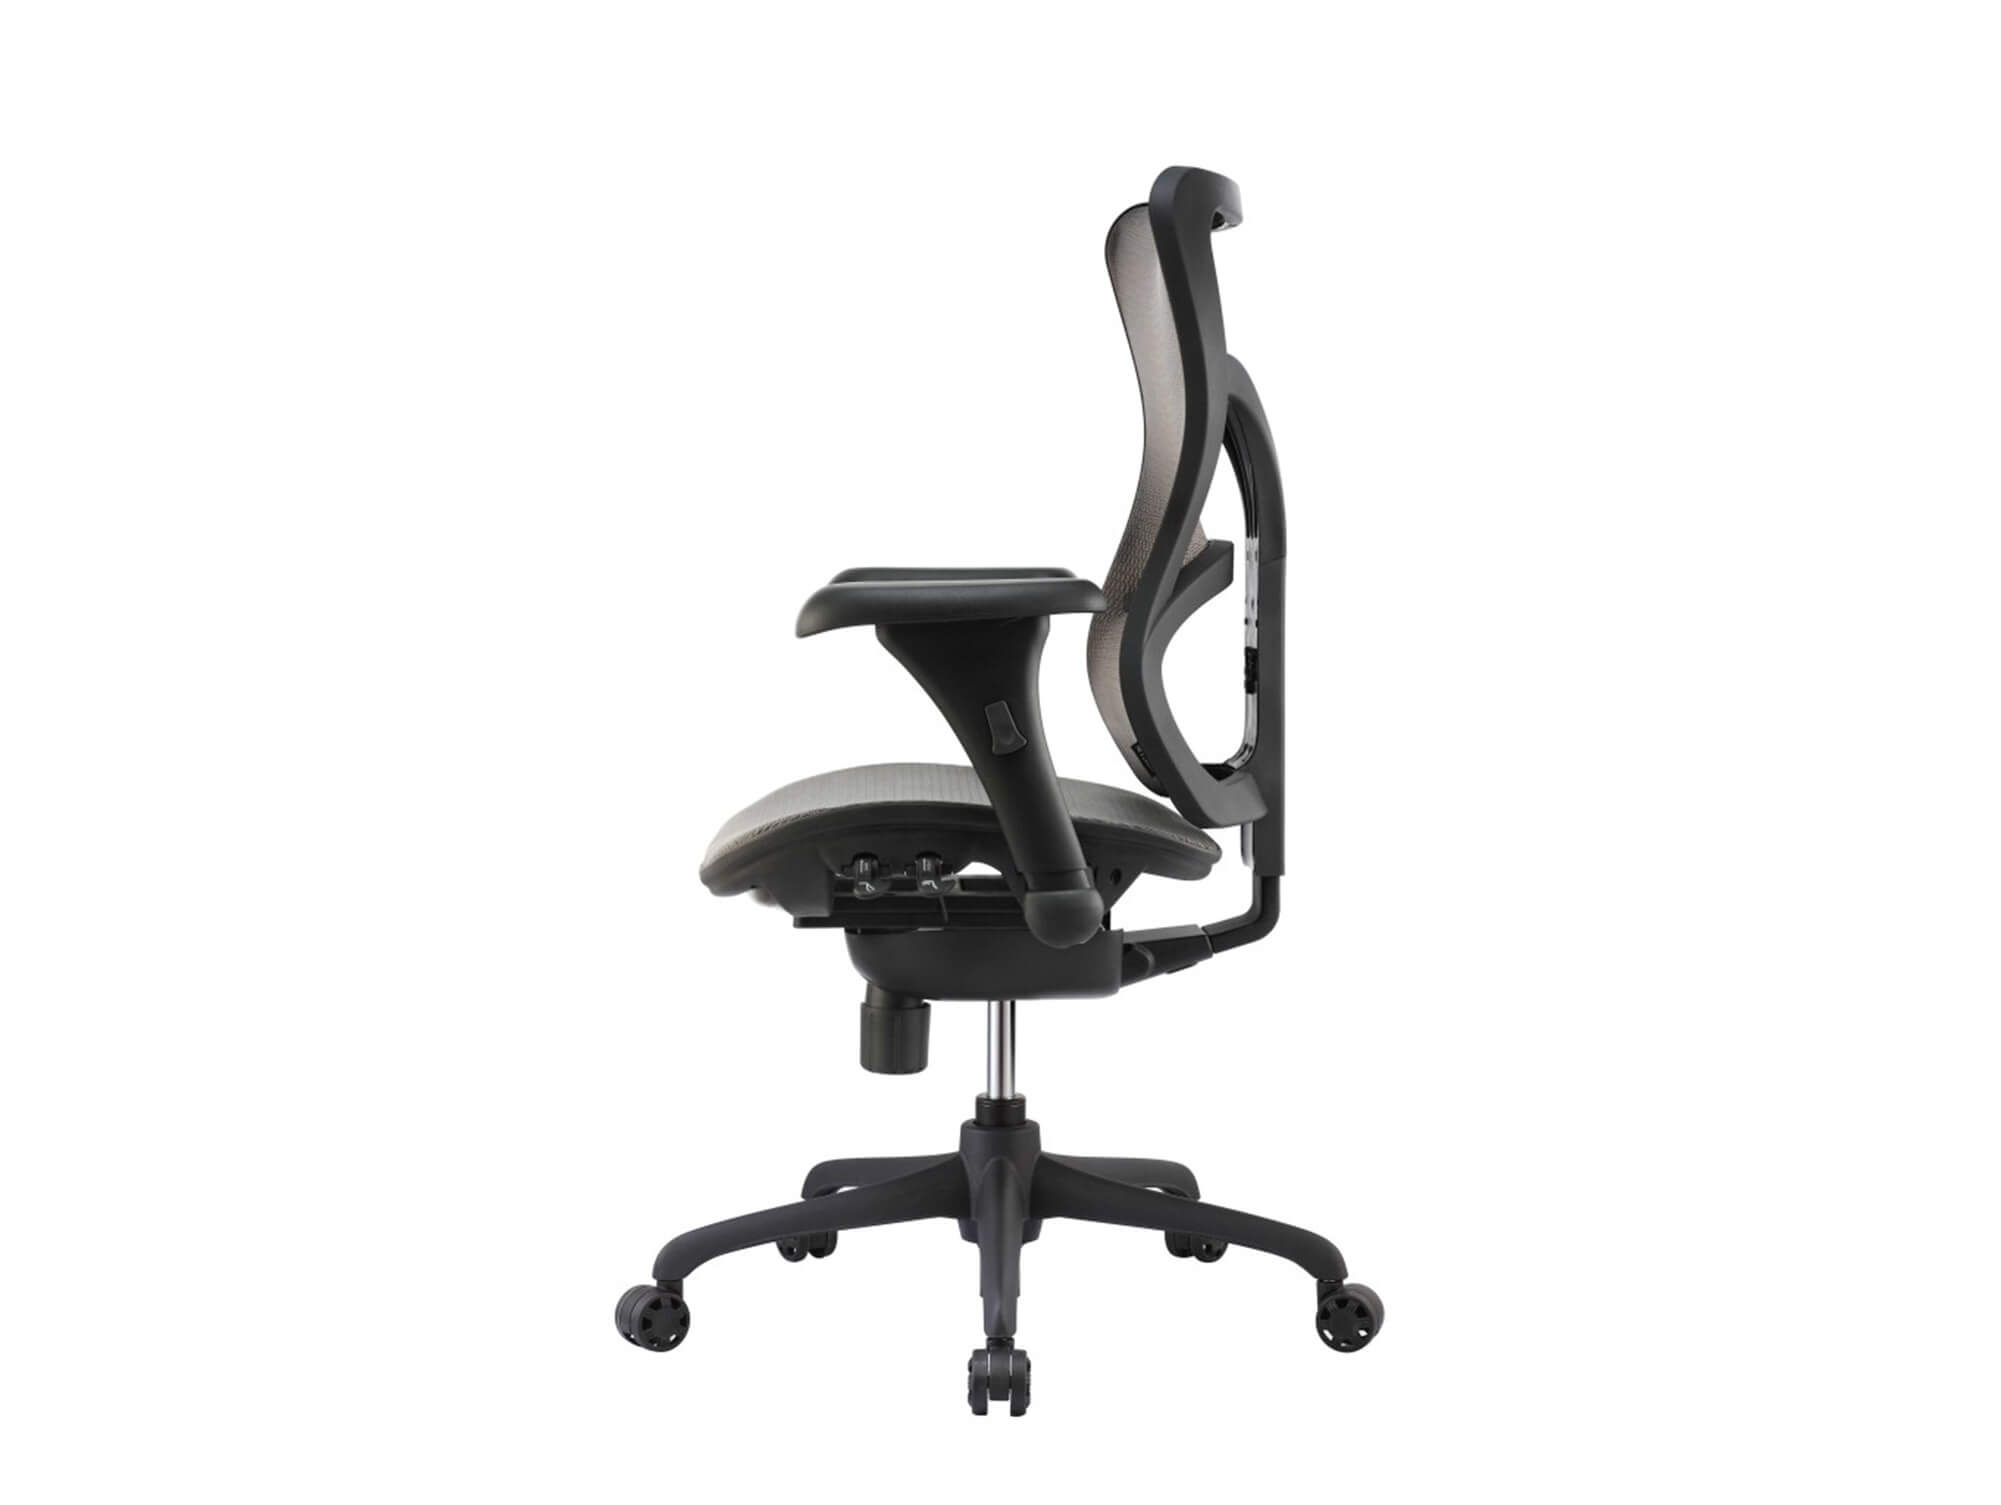 Adjustable office chair side